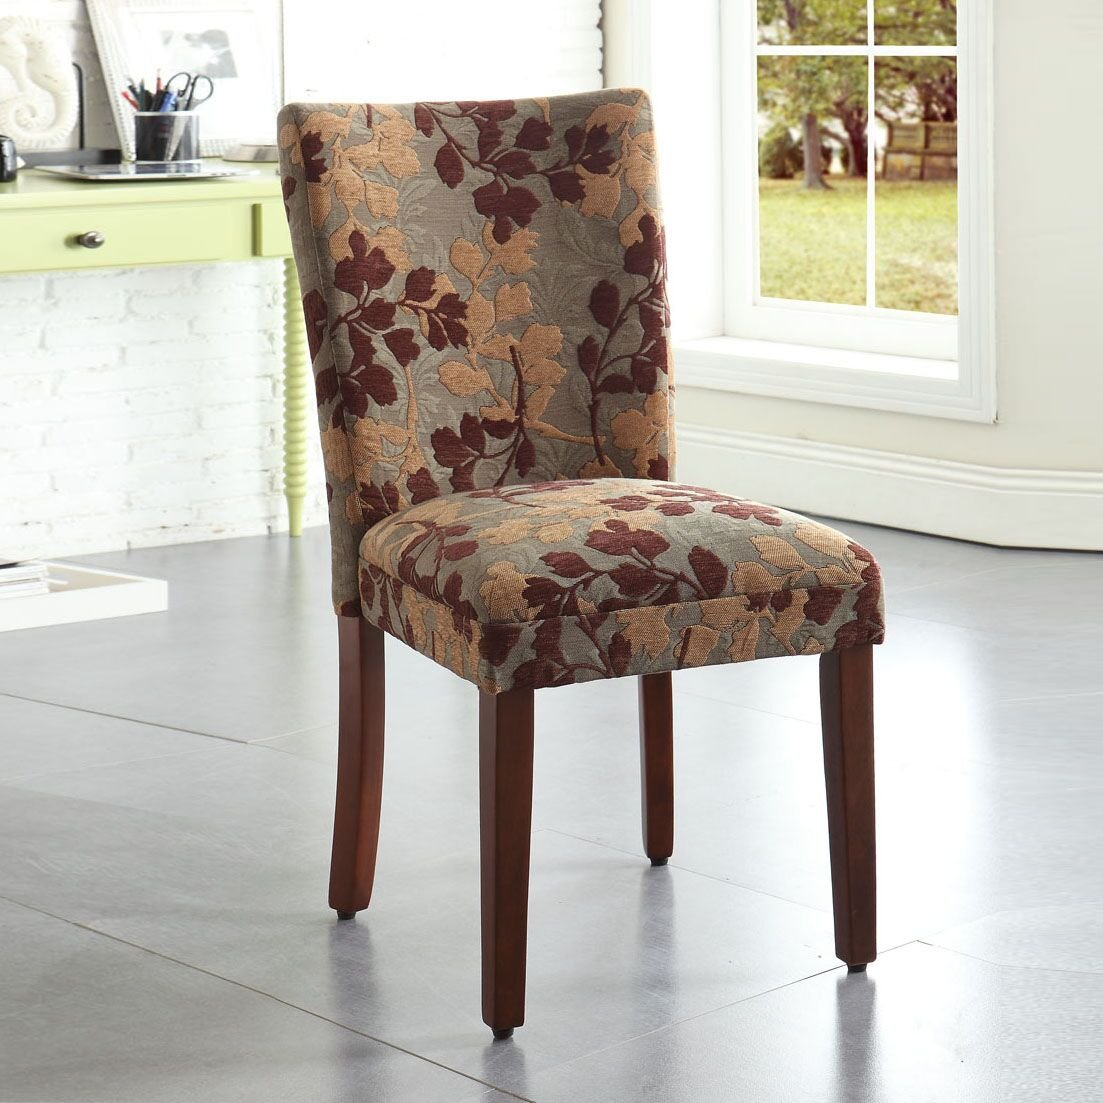 Kinfine Parsons Upholstered Accent Dining Chair, Single Pack, Brown Sage Leaf